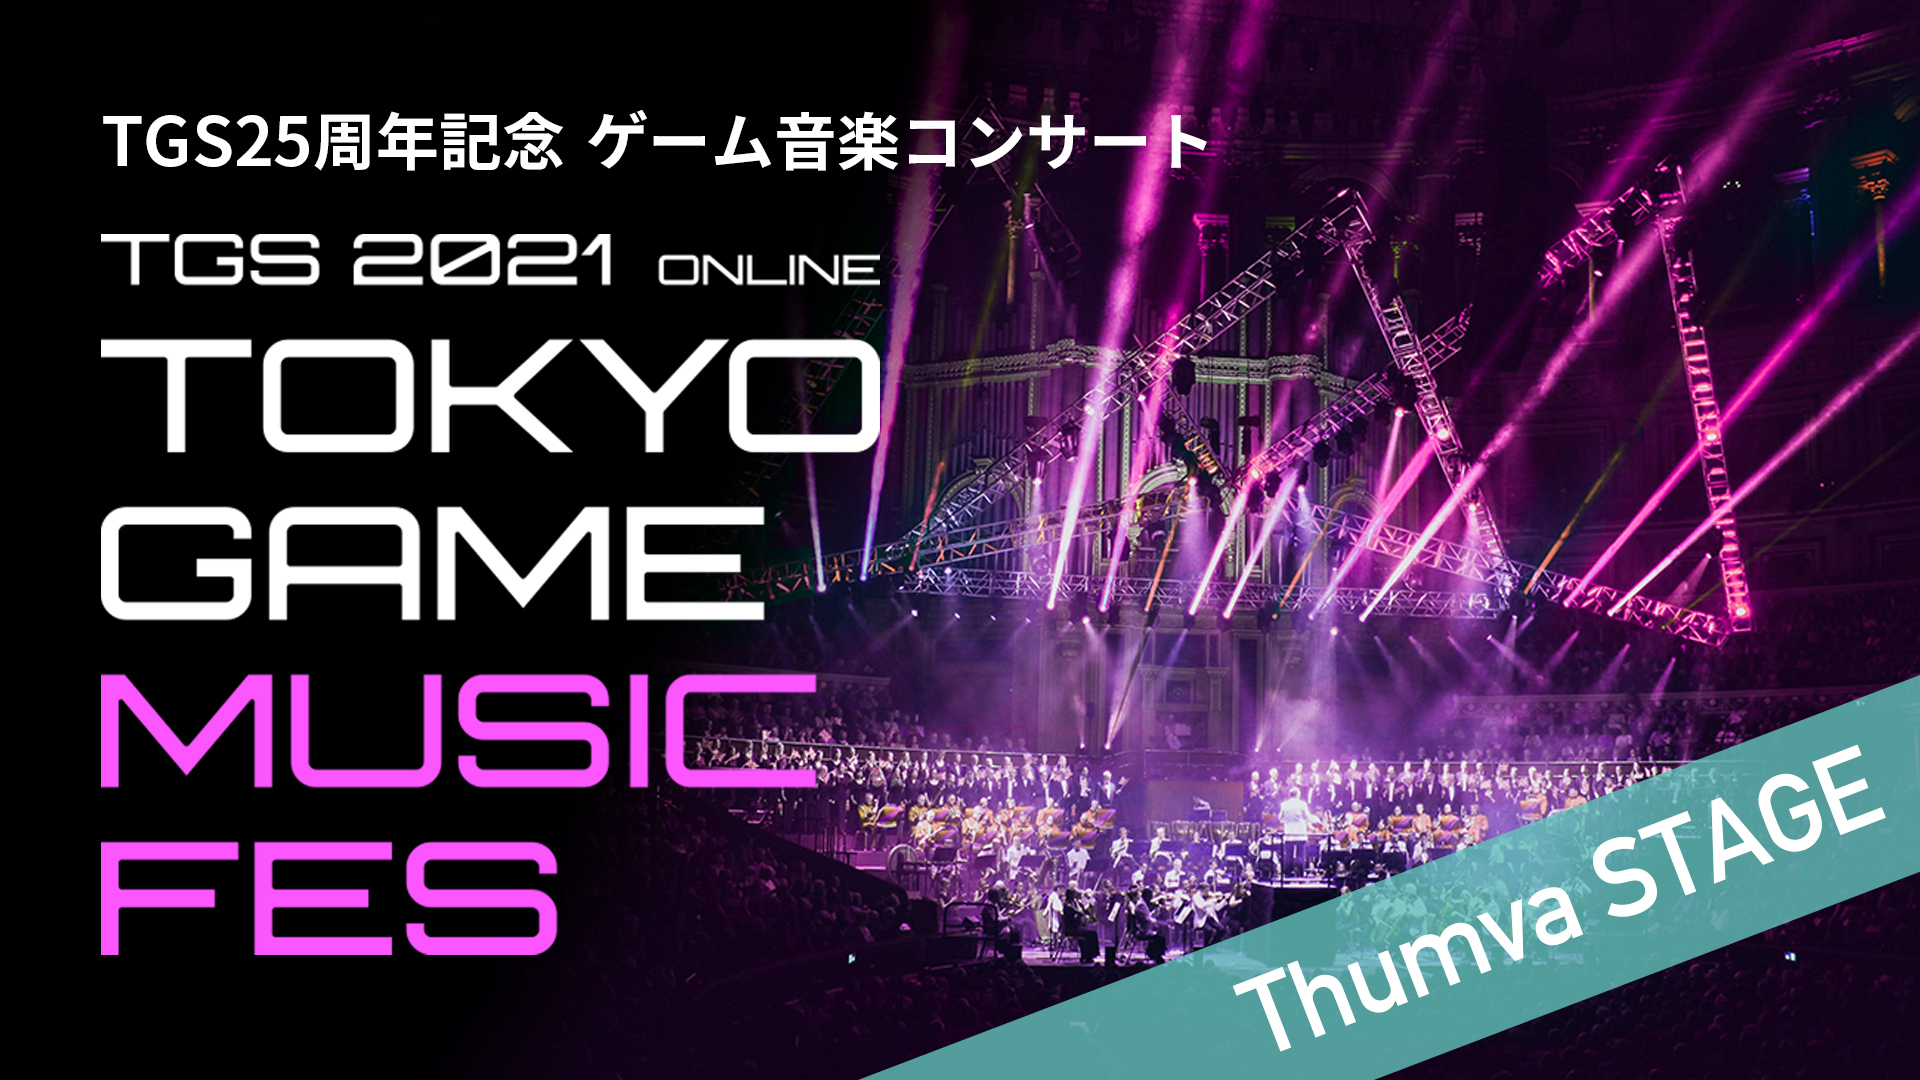 TOKYO GAME MUSIC FES: STAGE3 Thumva STAGE ~僕らと、ゲームと、音楽と。~ |